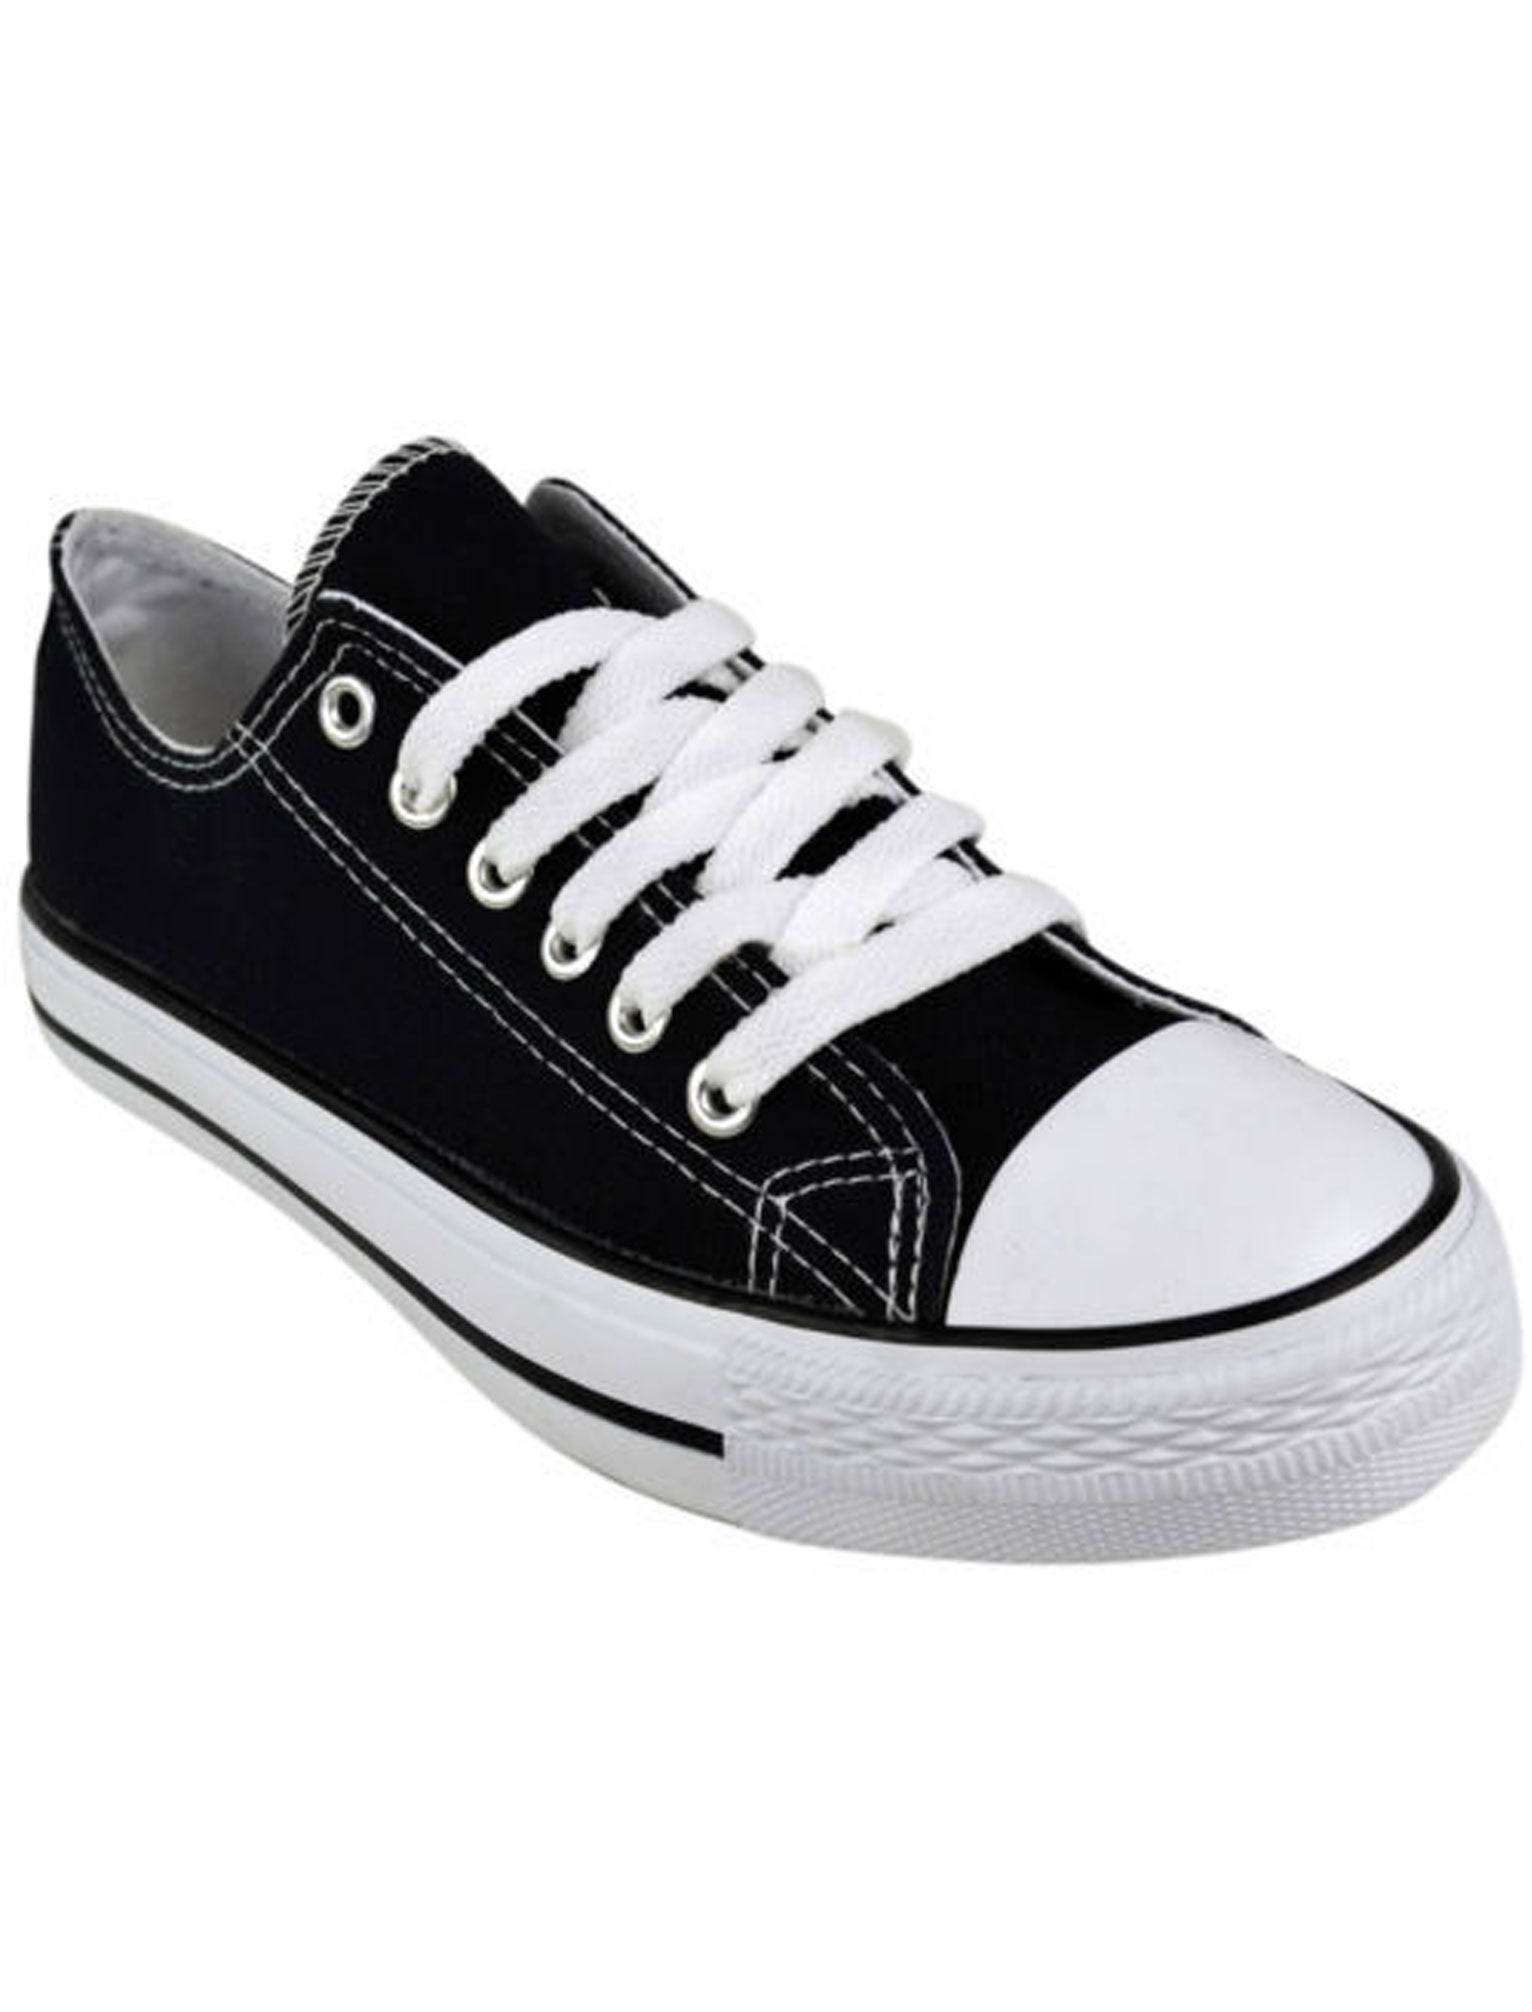 Tokyo Laundry Shoes Black canvas lace up plimsoll trainers / UK 3